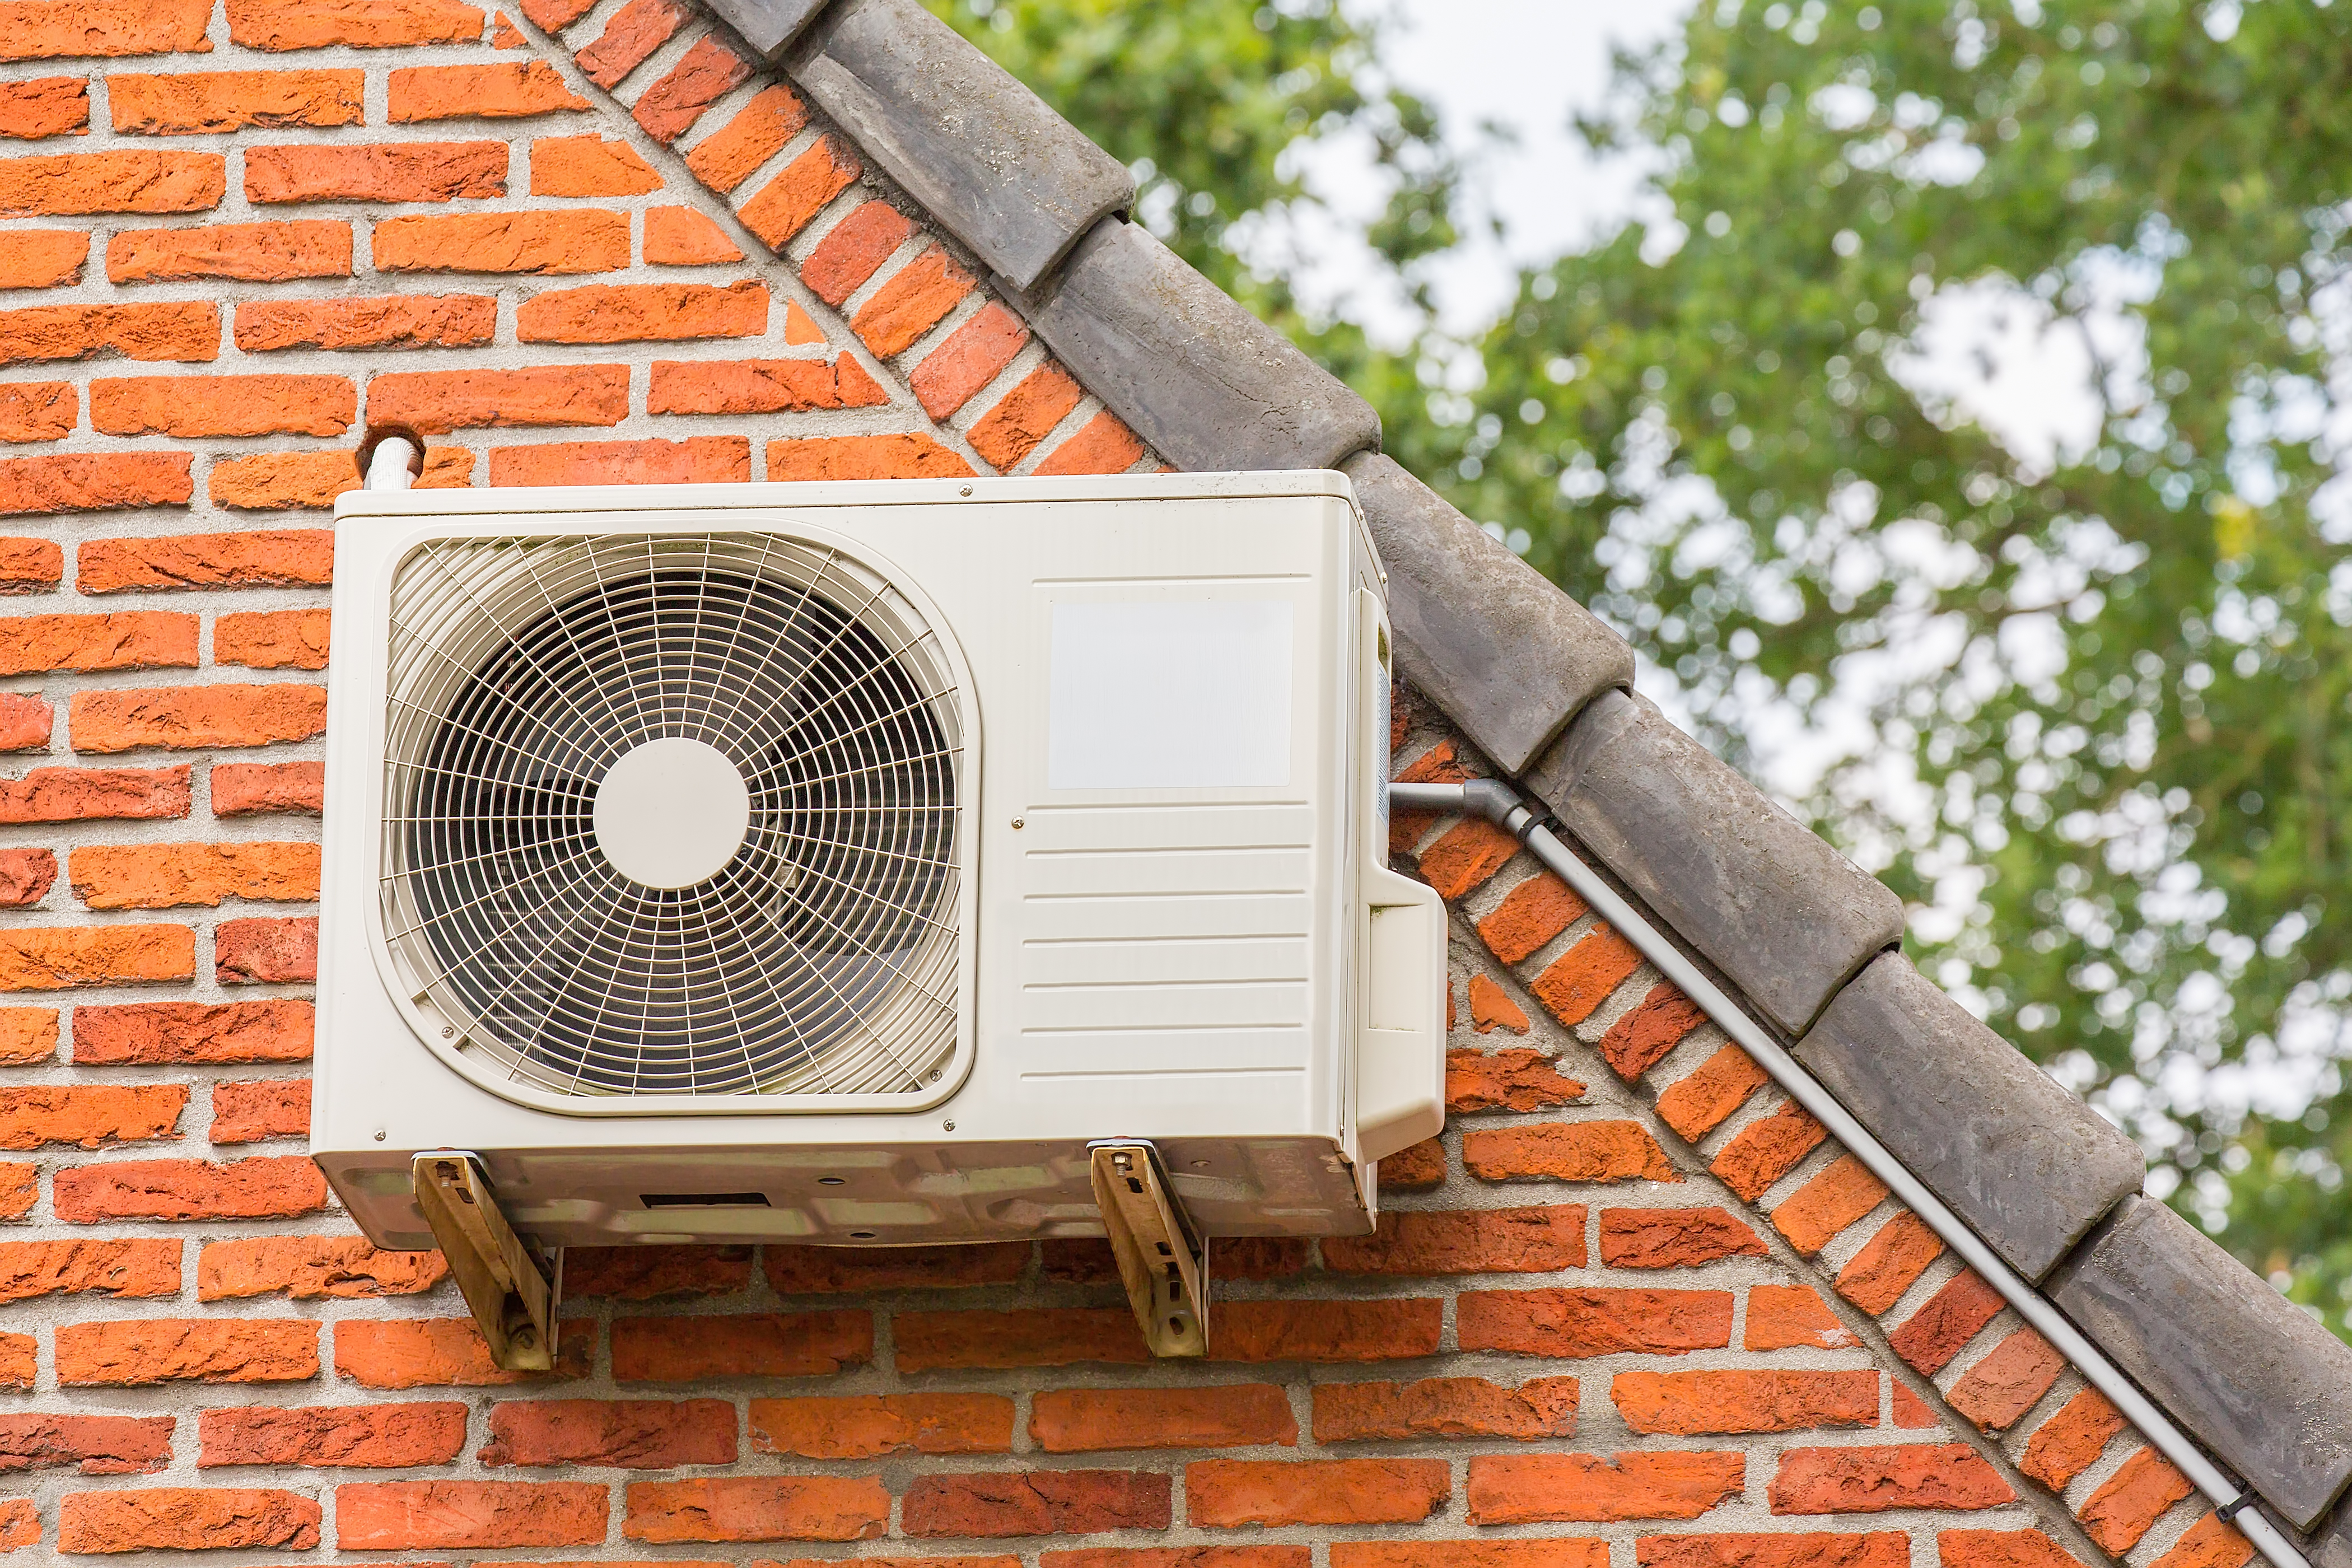 How Much Does a Wall A/C Run Up the Electric Bill? | Home Guides